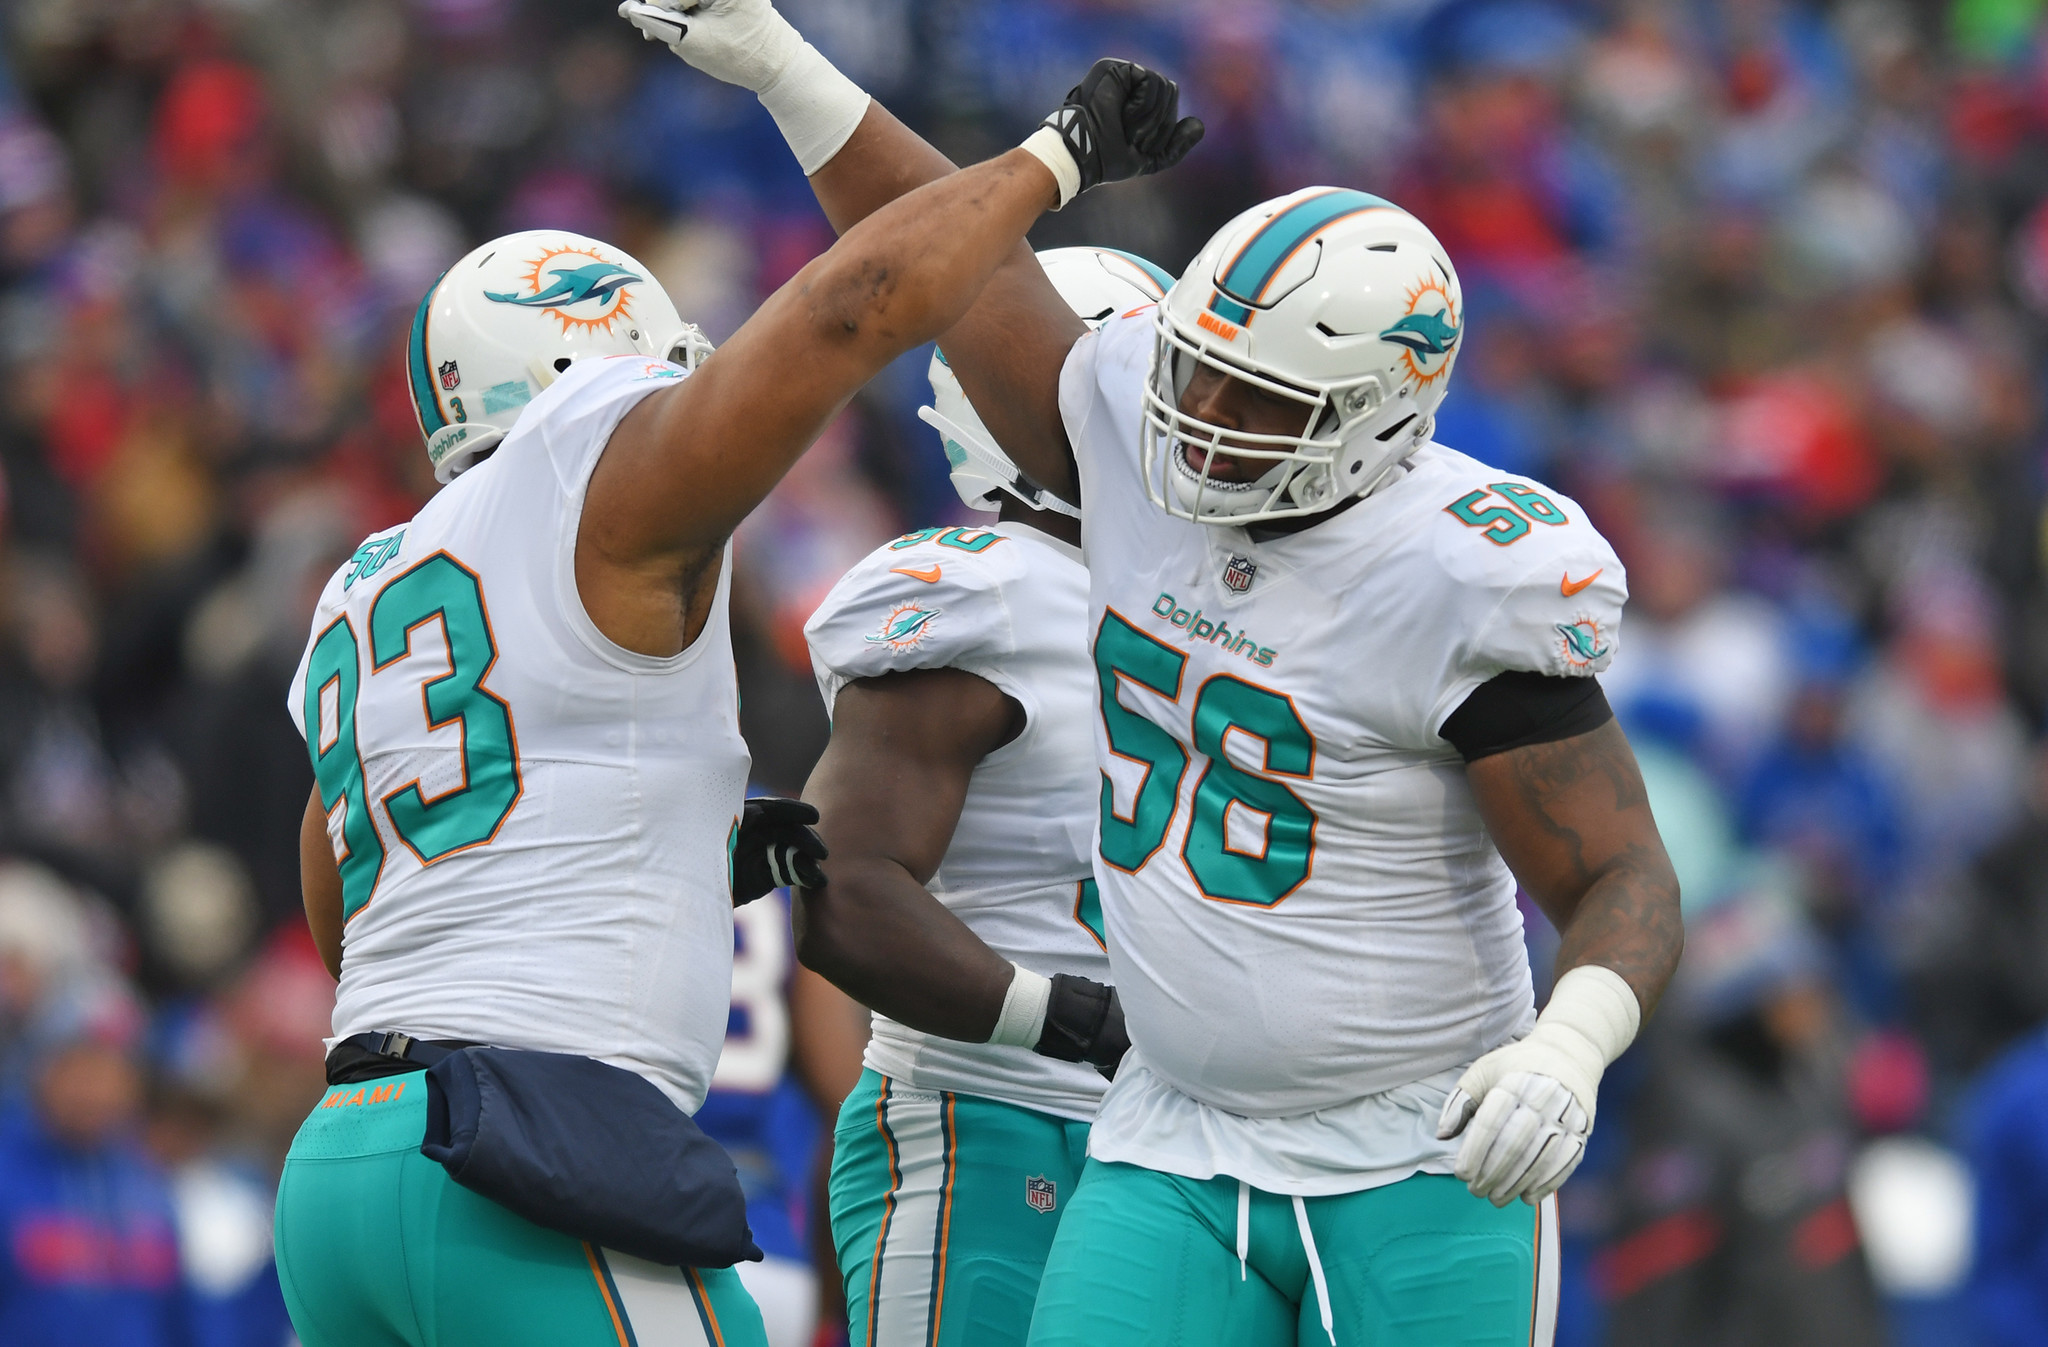 Sfl-how-did-every-dolphins-defensive-player-fare-this-season-and-whats-their-contract-status-20180116